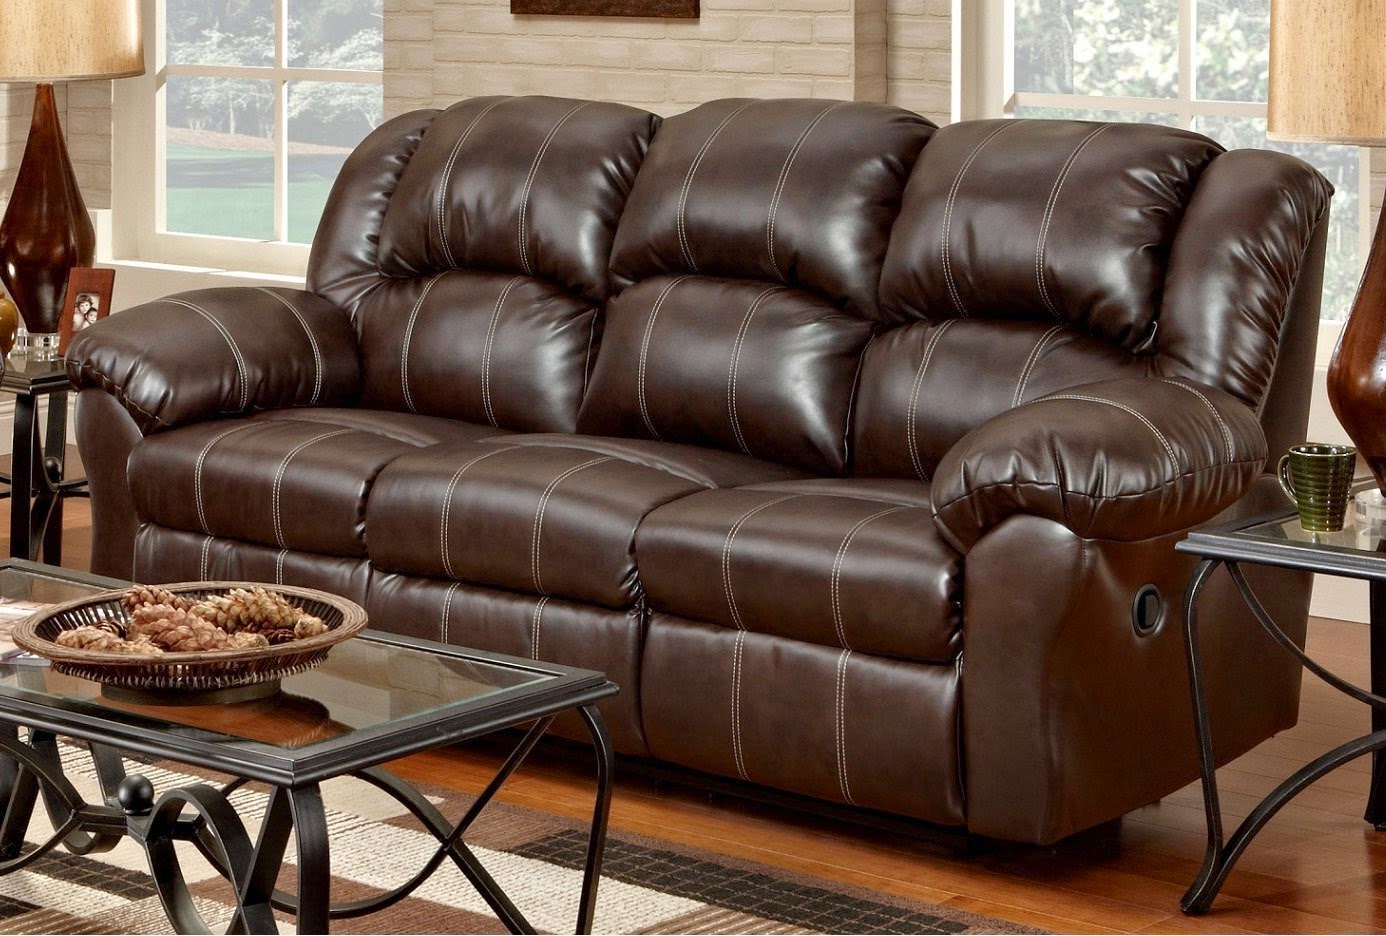 best leather reclining sofa brands reviews alpha leather. Black Bedroom Furniture Sets. Home Design Ideas